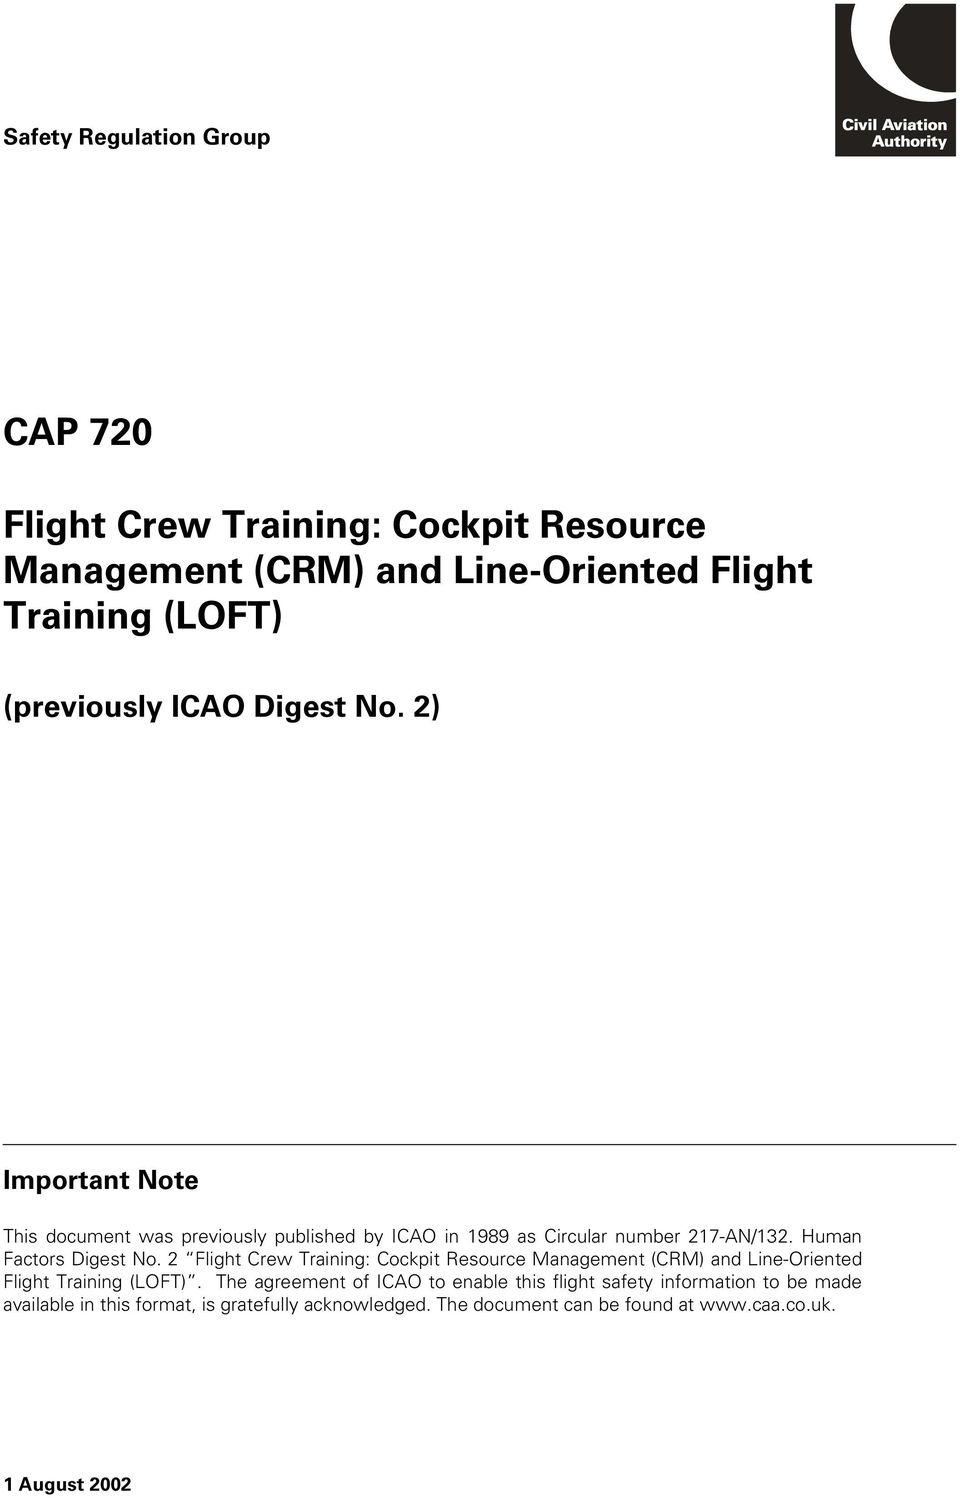 Human Factors Digest No. 2 Flight Crew Training: Cockpit Resource Management (CRM) and Line-Oriented Flight Training (LOFT).